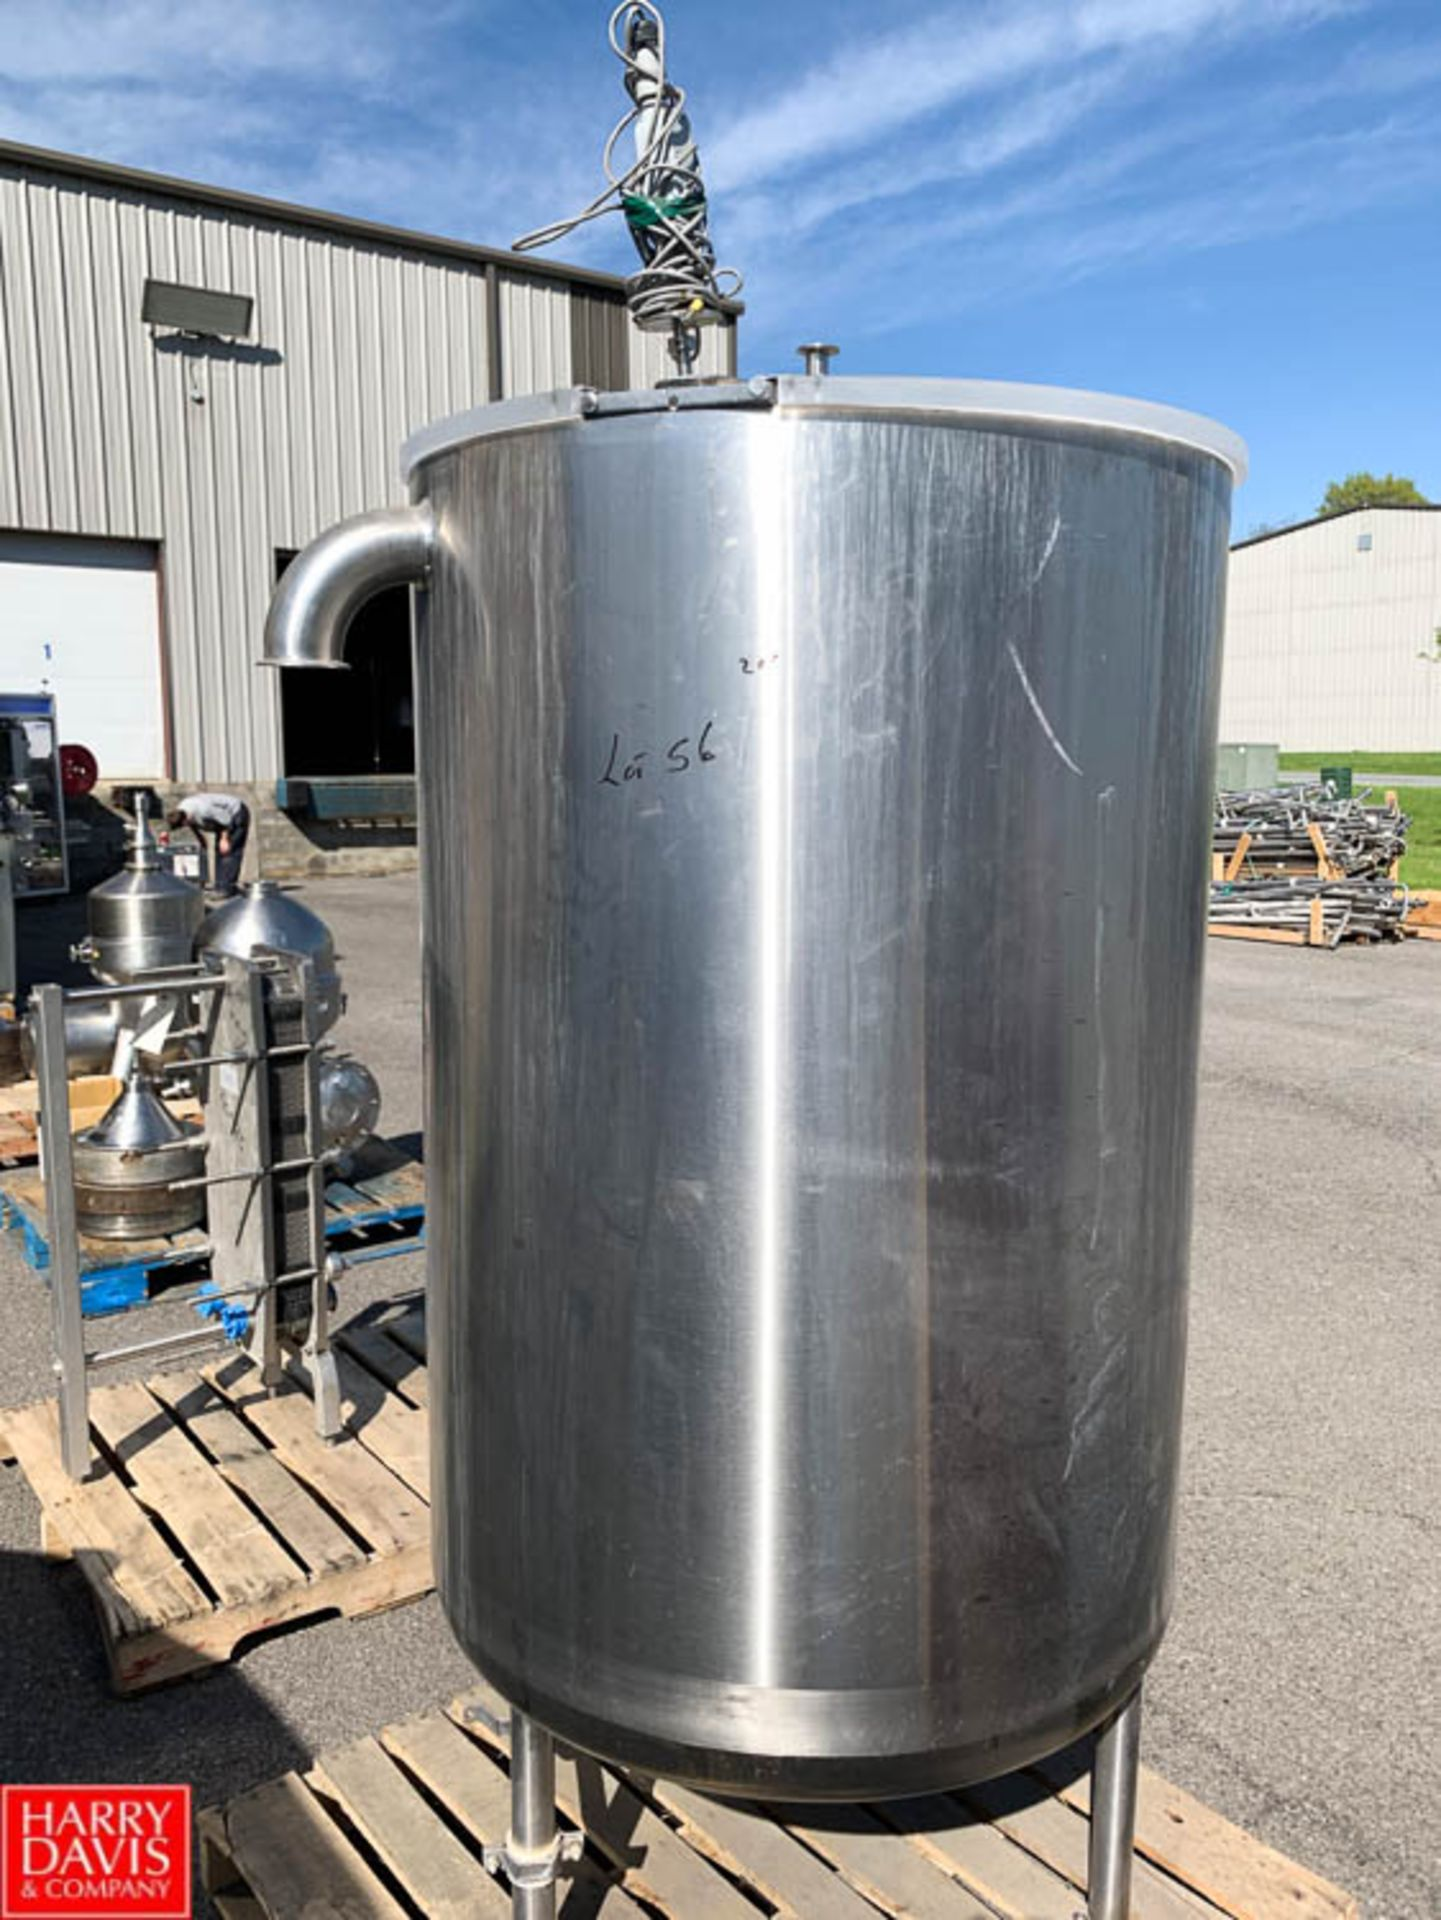 Lot 56 - 200 Gallon S/S Hinged-Lid Vertical Tank - Rigging Fee: $25